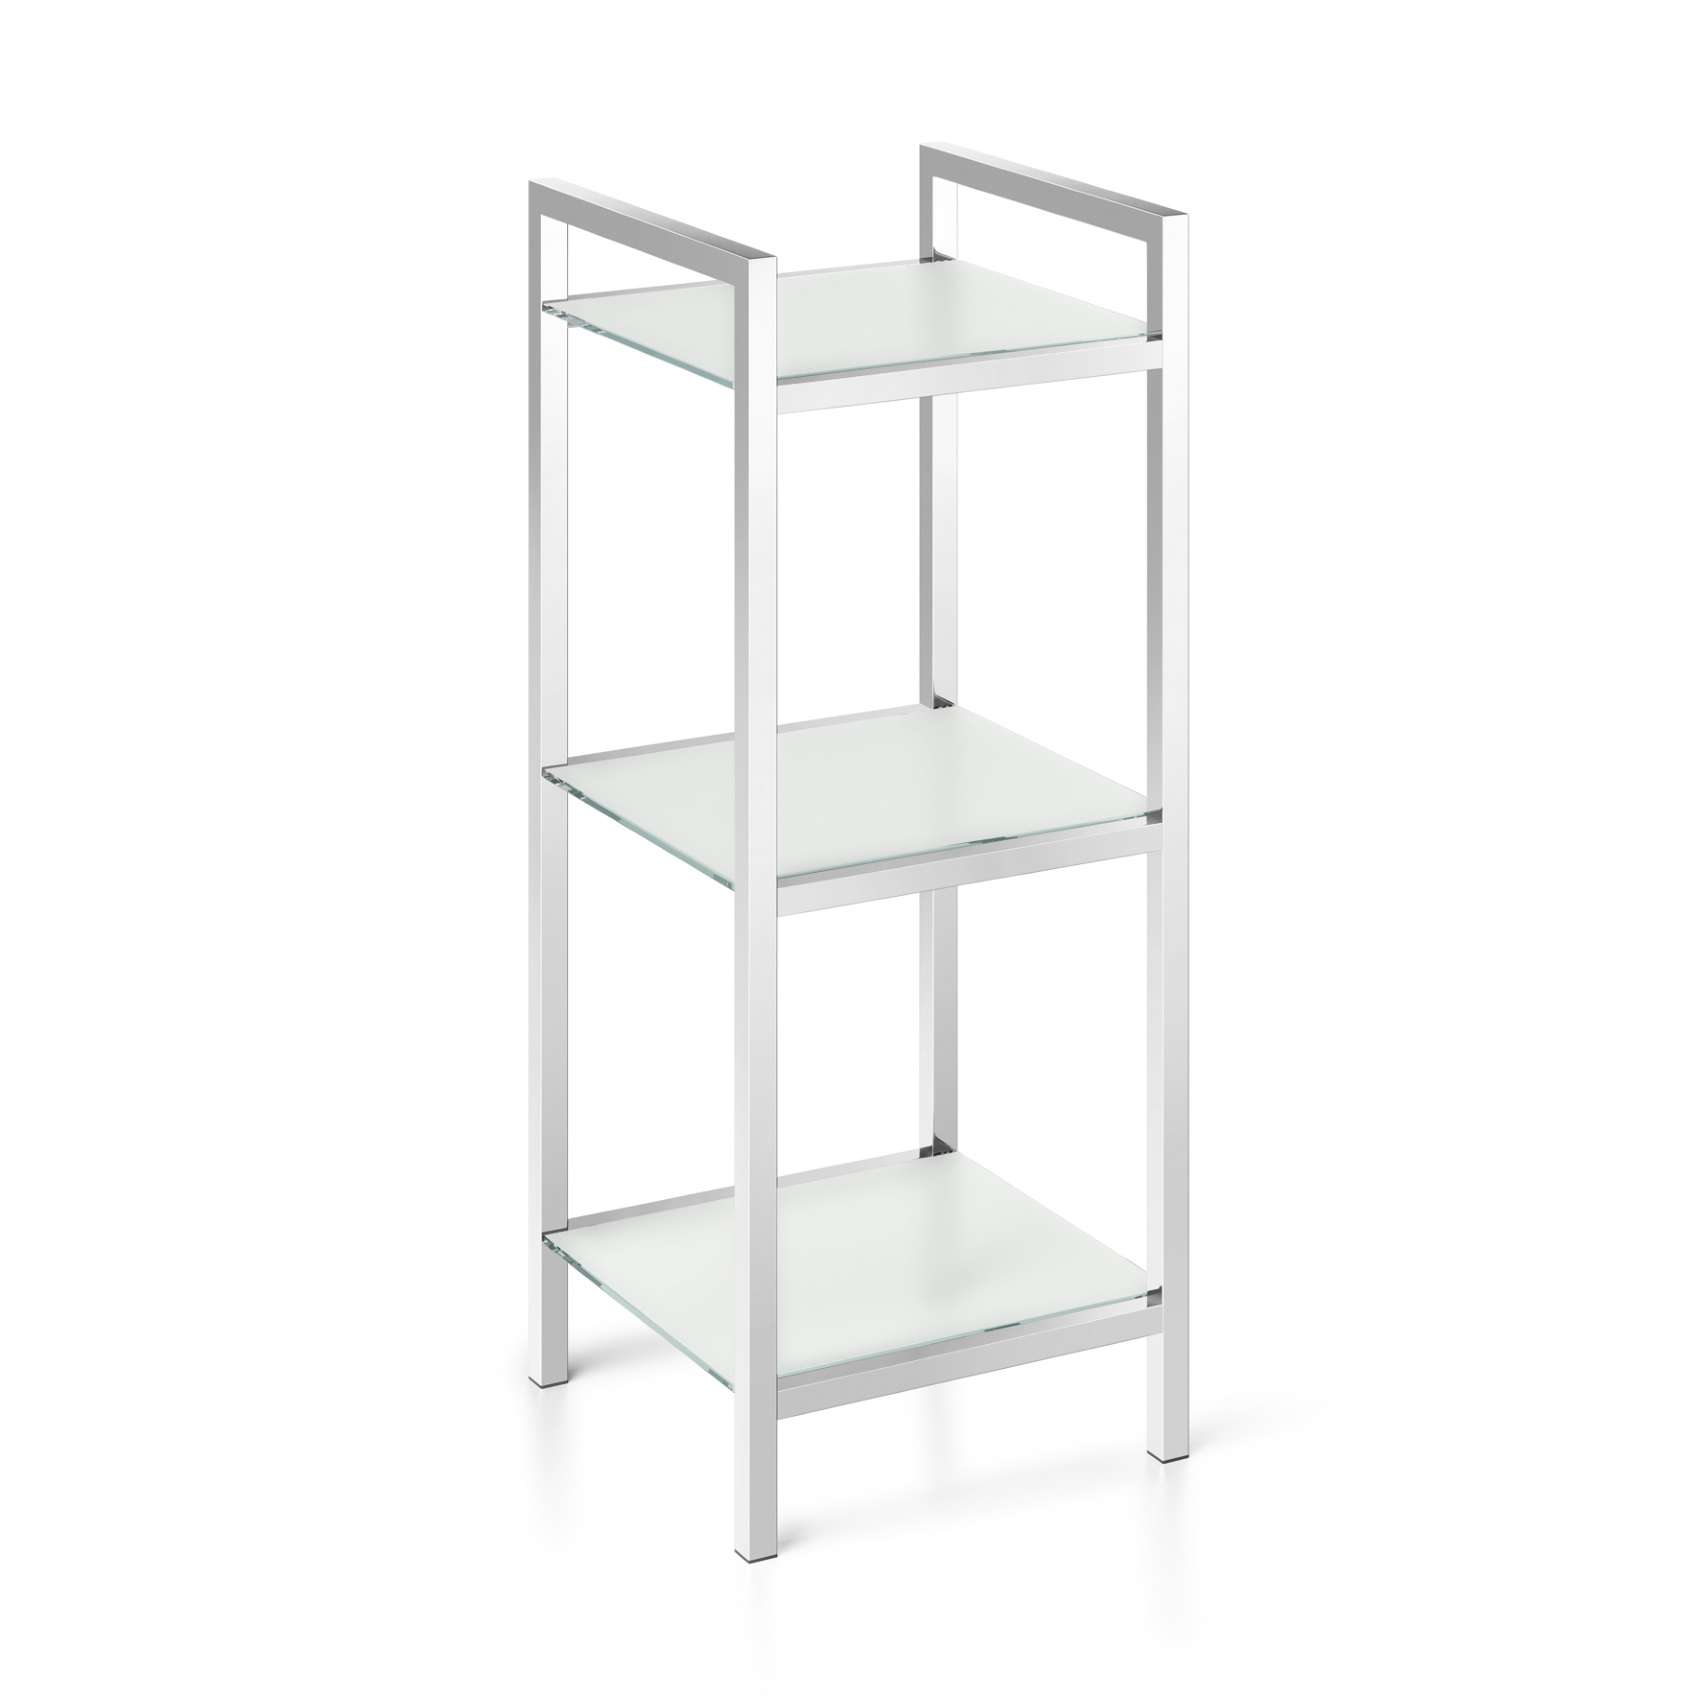 Badregal Mit Glas Zack Bathroom Shelving Cenius Stainless Steel And Tempered Glass With 3 Storage Compartments Polished